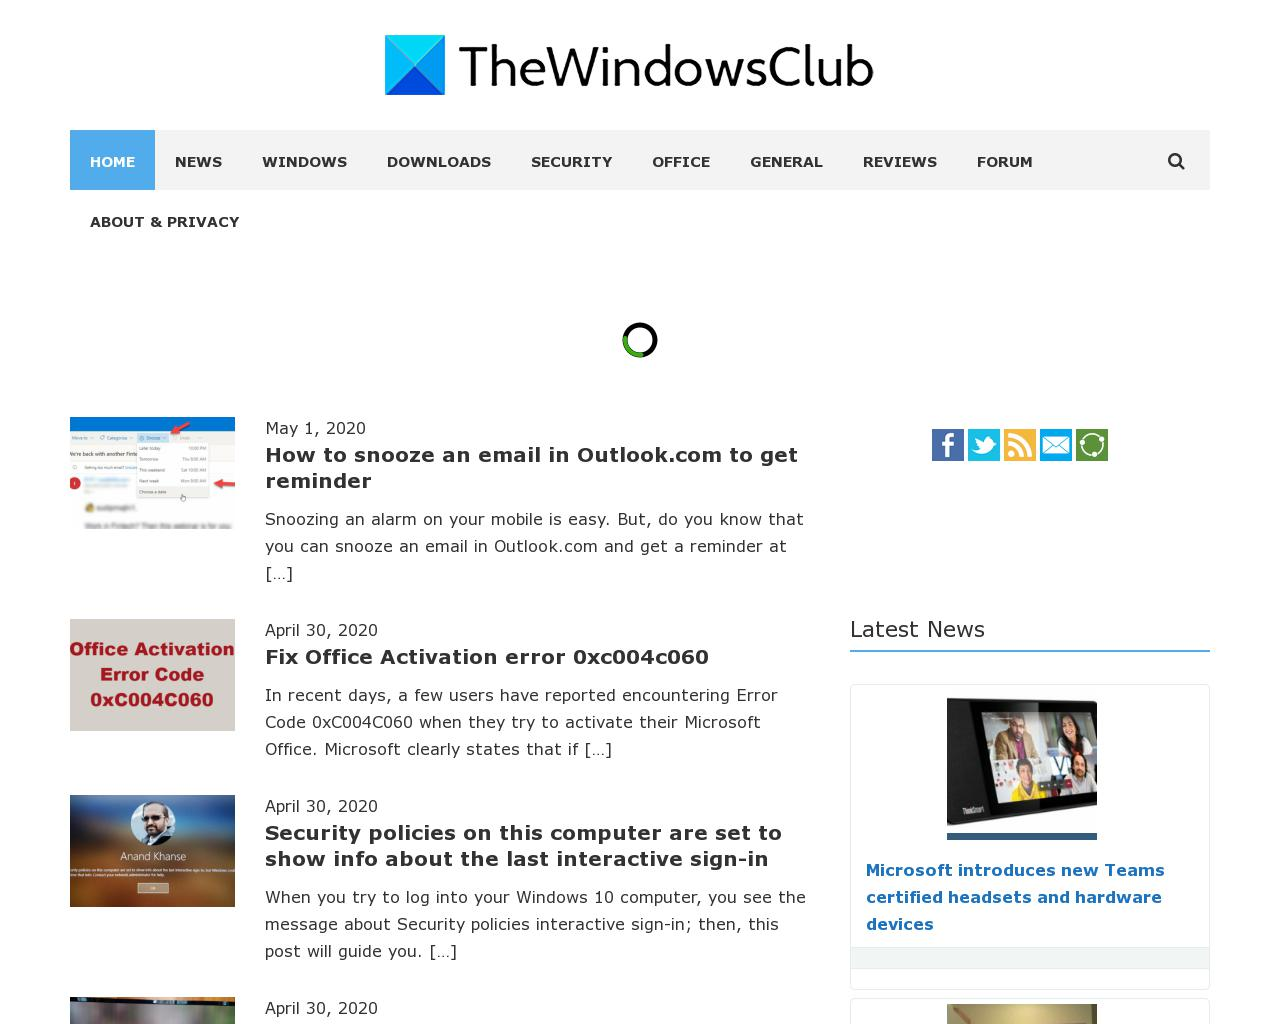 thewindowsclub.com